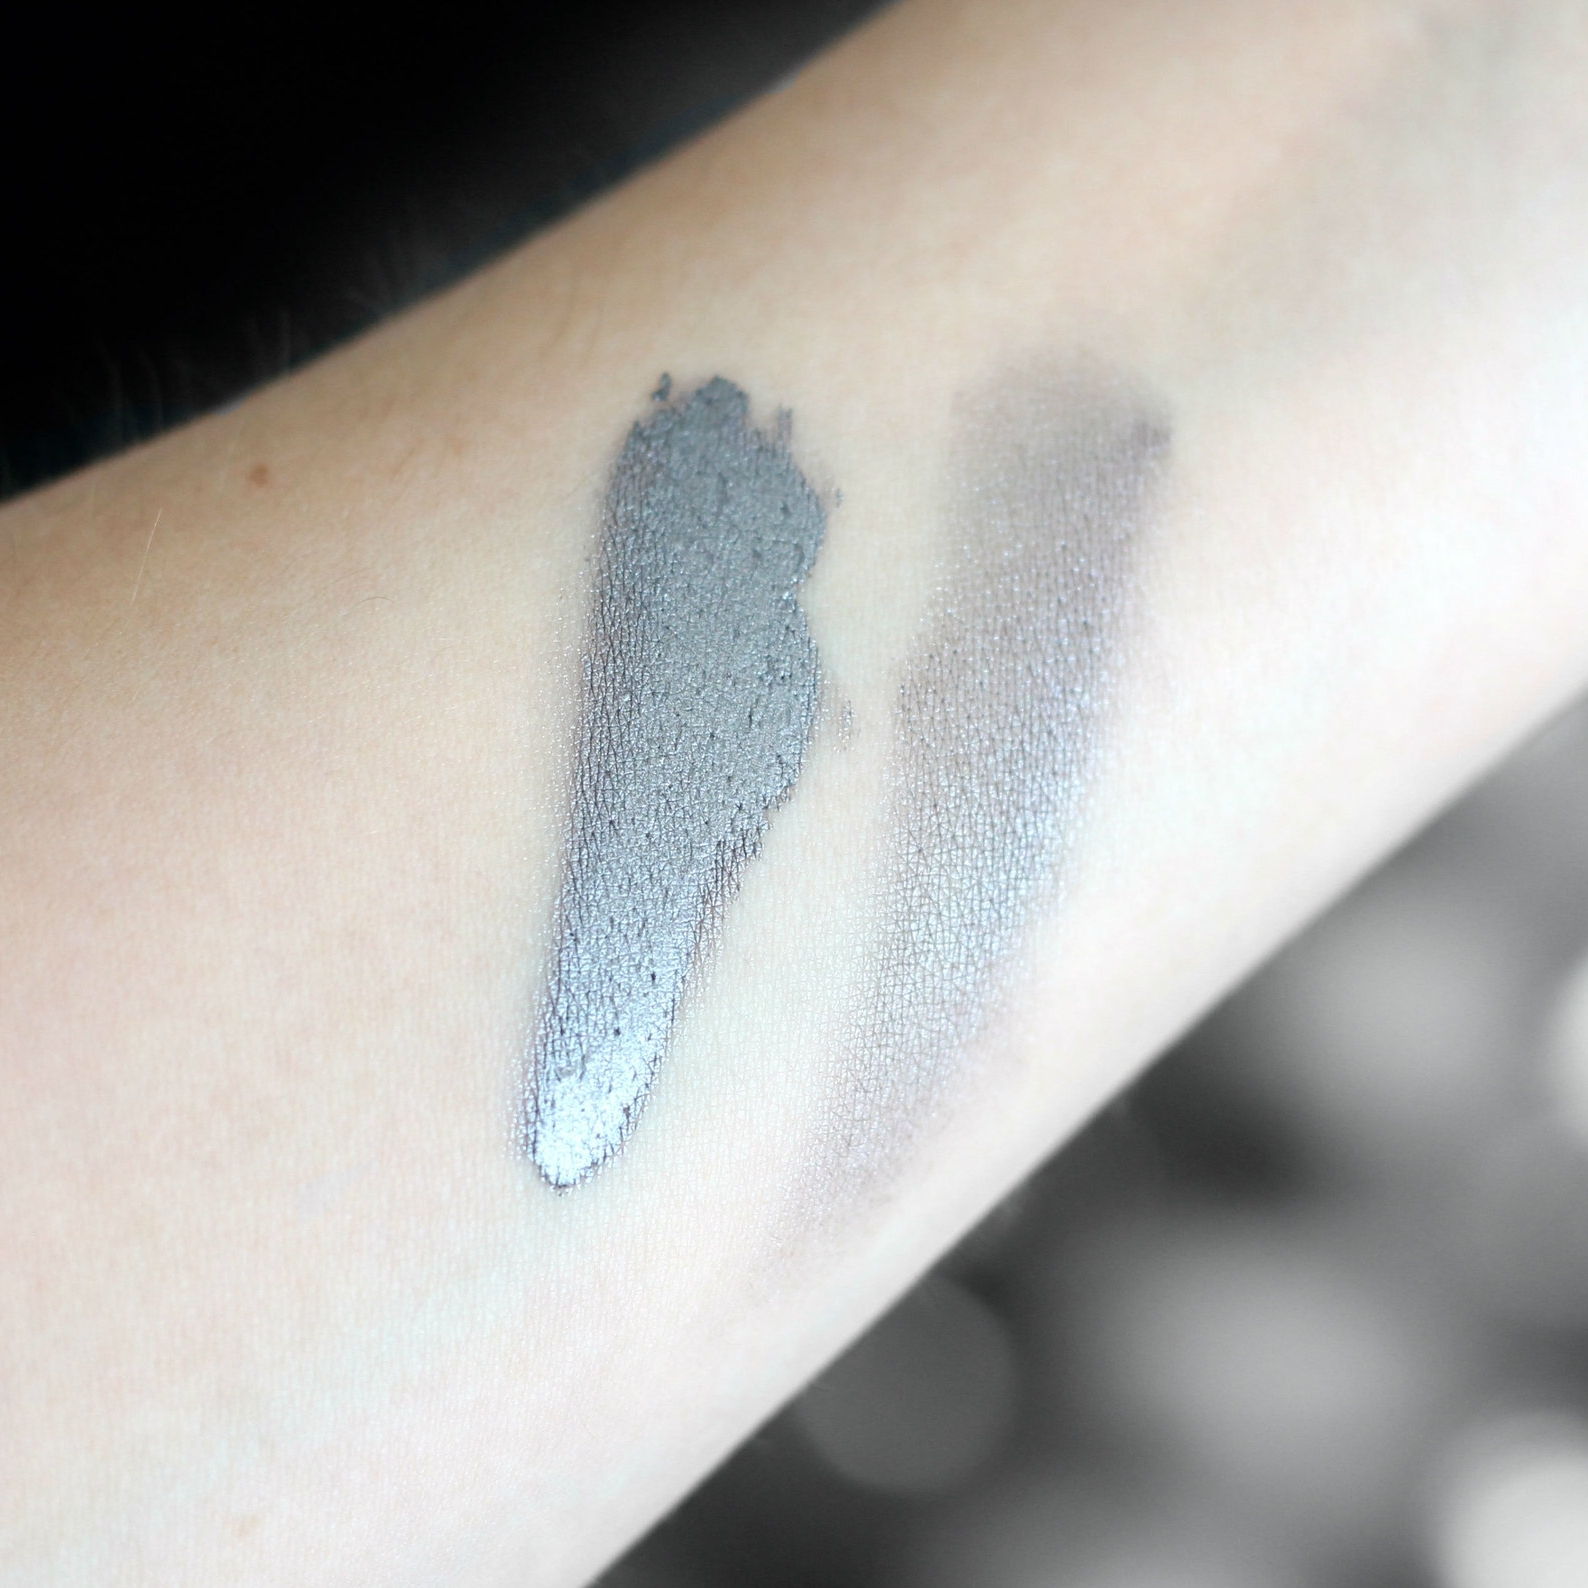 Review and Swatches of the Make Up For Ever Aqua XL Color Paint Shadow in I-12 (Iridescent Steel Grey) on Bratty B